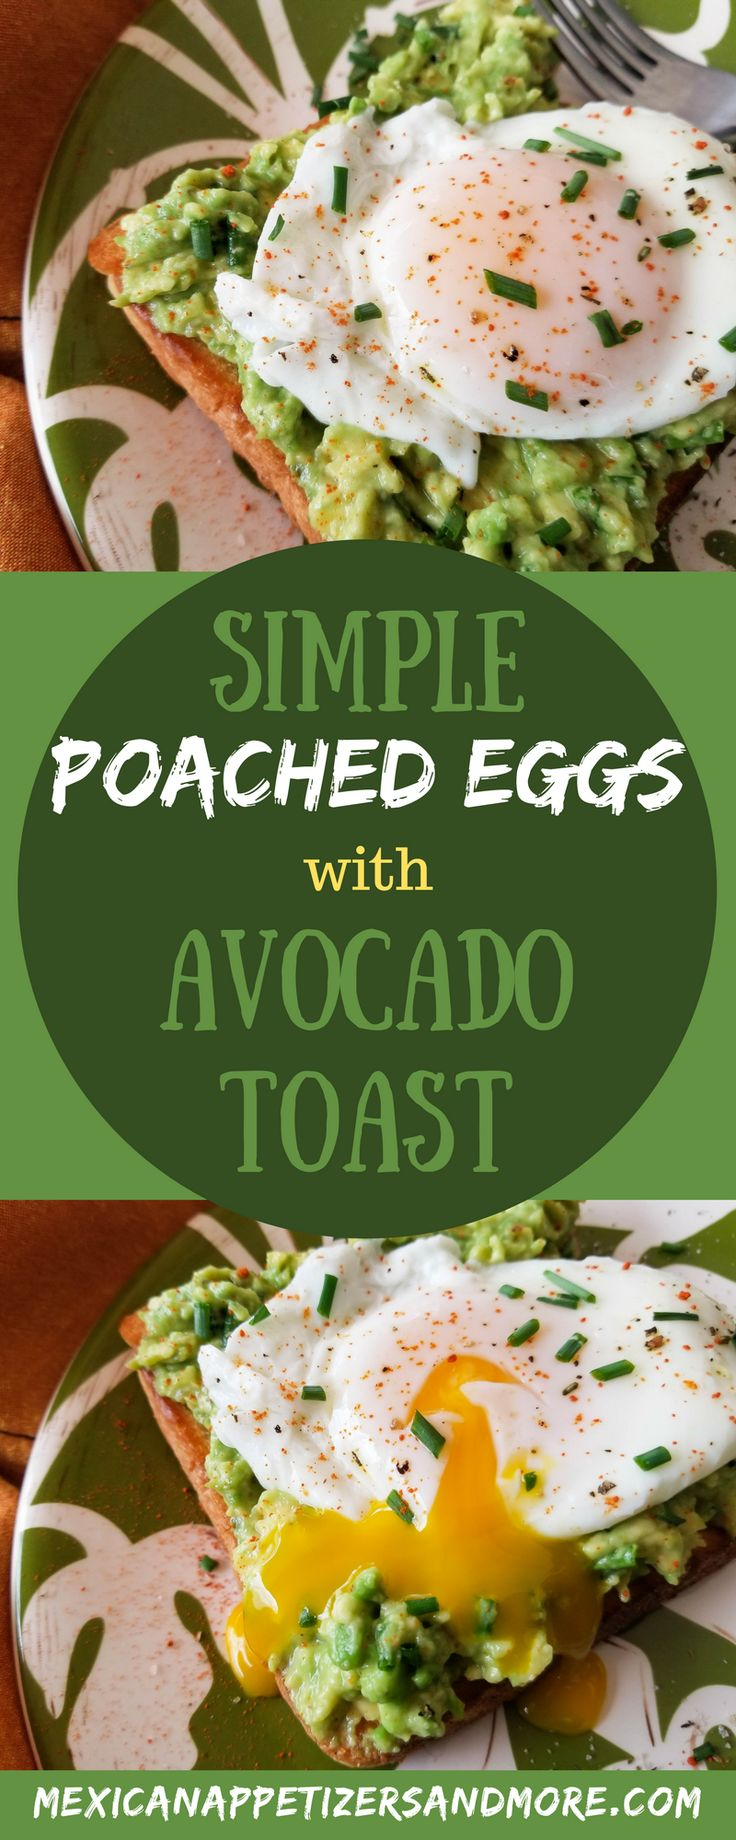 This Simple Poached Egg and Avocado Toast recipe is the most perfect delicious healthy breakfast. Breakfast of champions! With an avocado spread made with cayenne pepper, chives and topped with a perfectly poached egg. #avocadotoast #poachedeggs #avocadorecipes #mexicanbreakfast #breakfast \ mexicanappetizersandmore.com